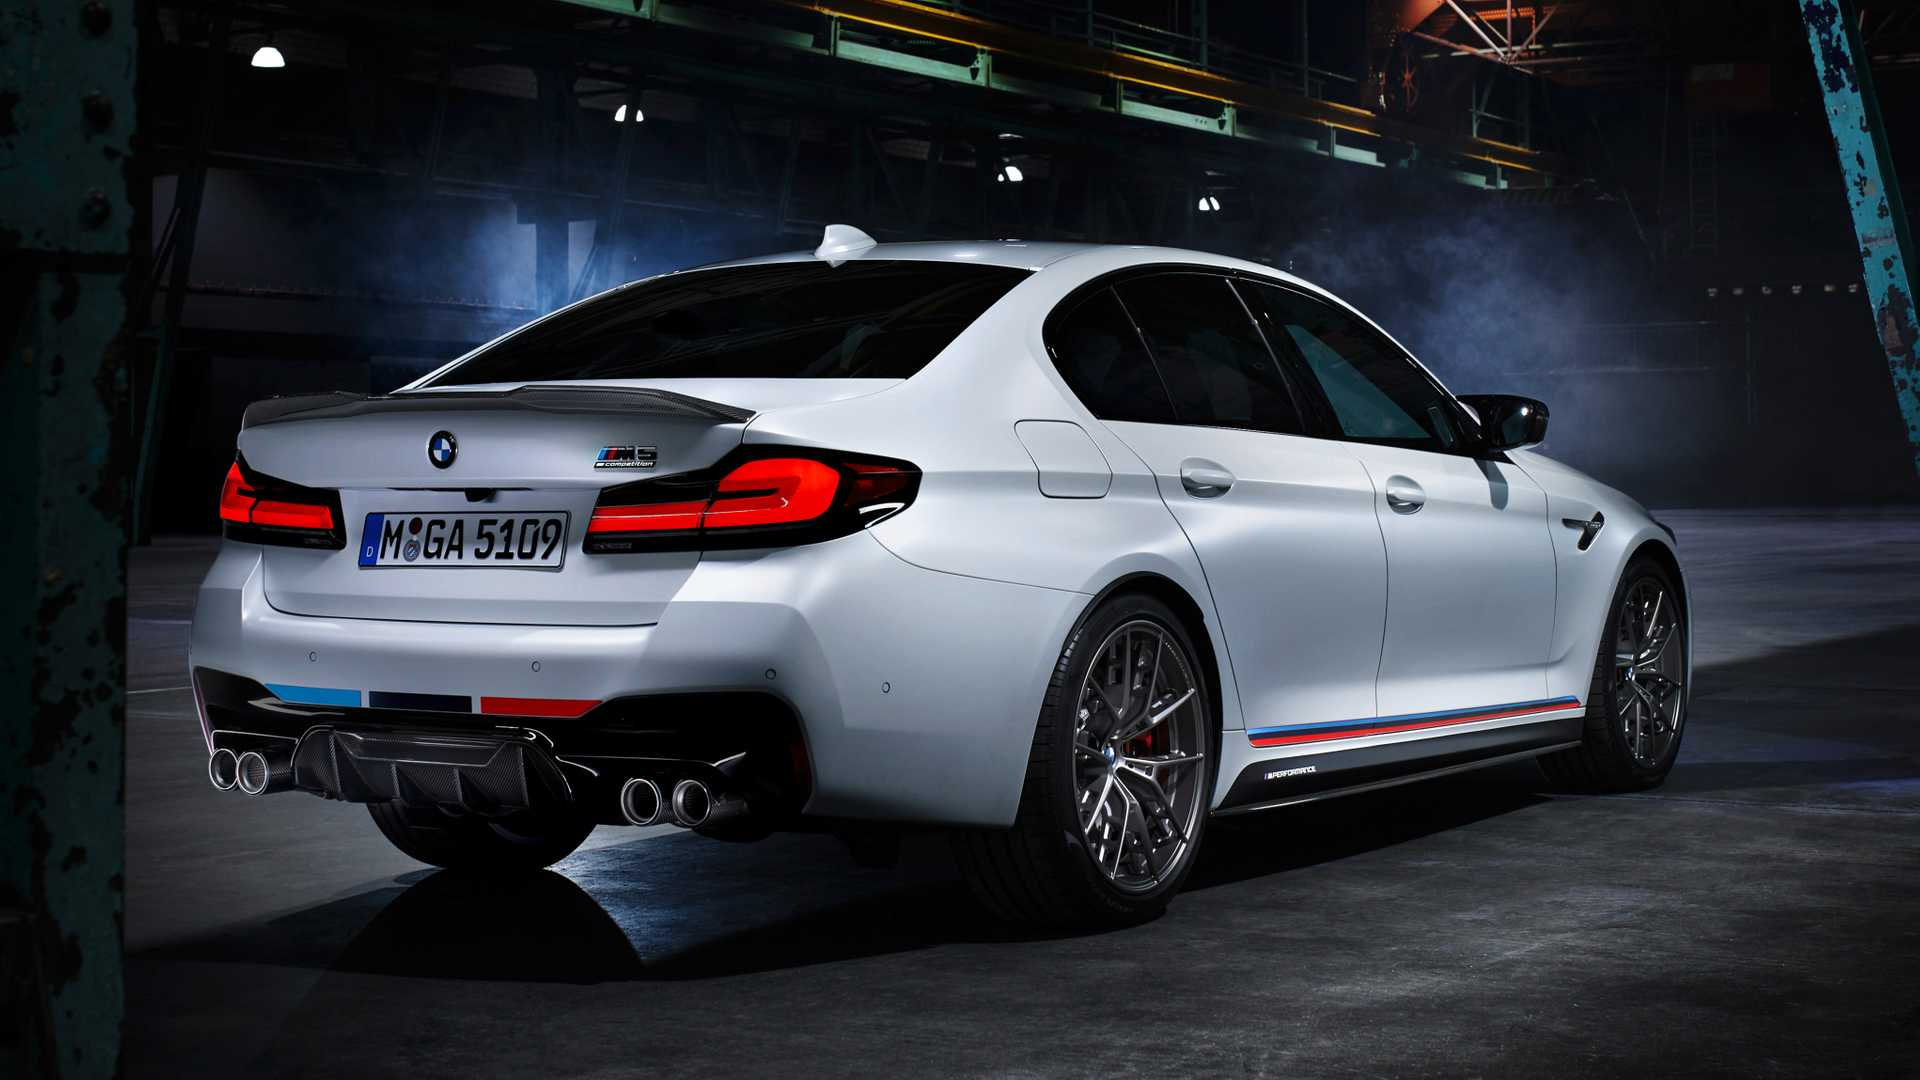 https://cdn.motor1.com/images/mgl/ppv4r/s1/m-performance-parts-fur-m5-competition-2020.jpg